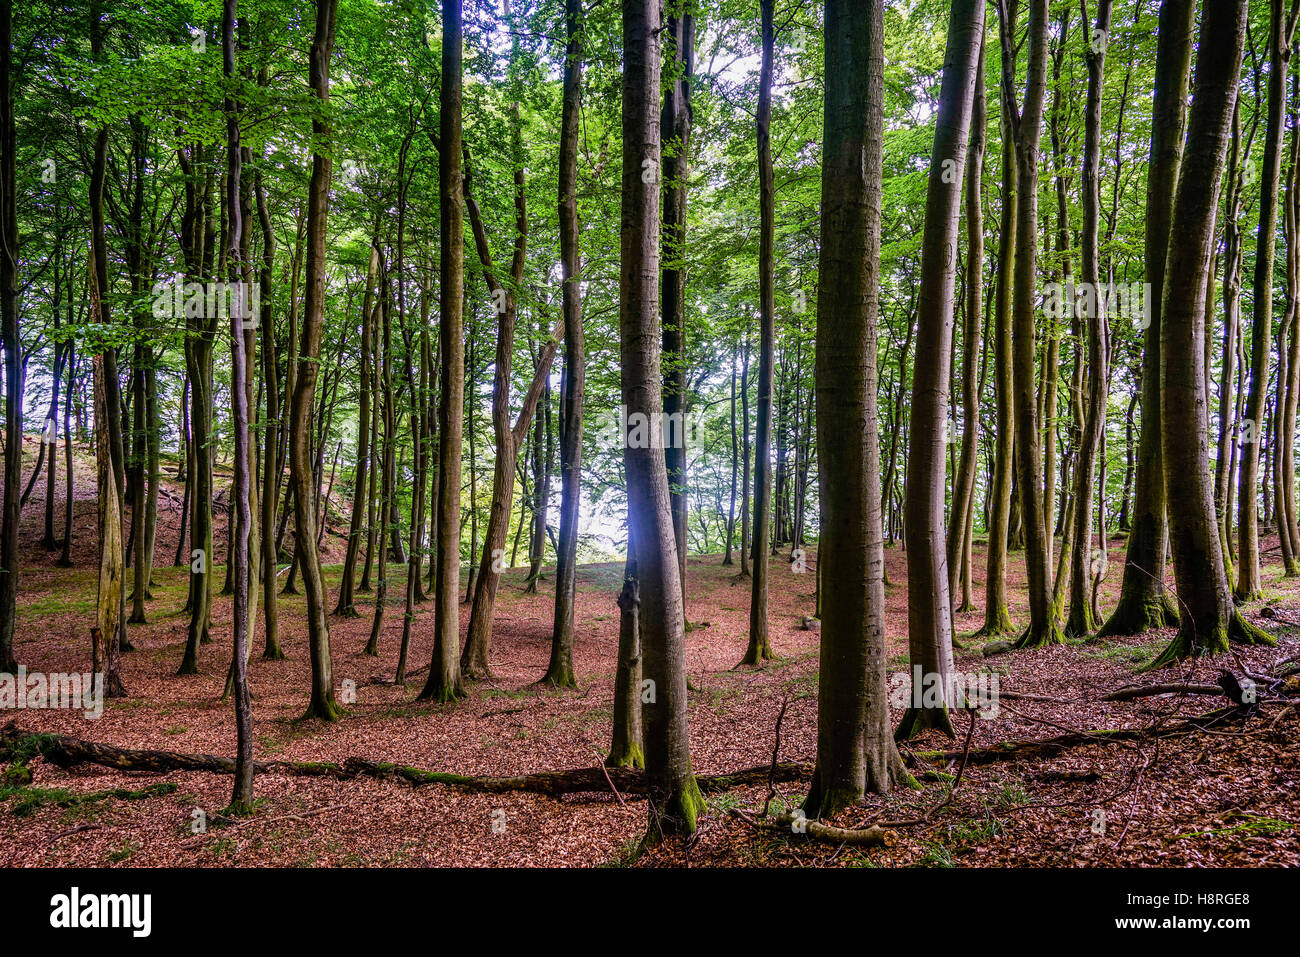 Primeval Beech Forest at Jasmund National Park on the island of Rügen, Mecklenburg-Vorpommern, Germany - Stock Image